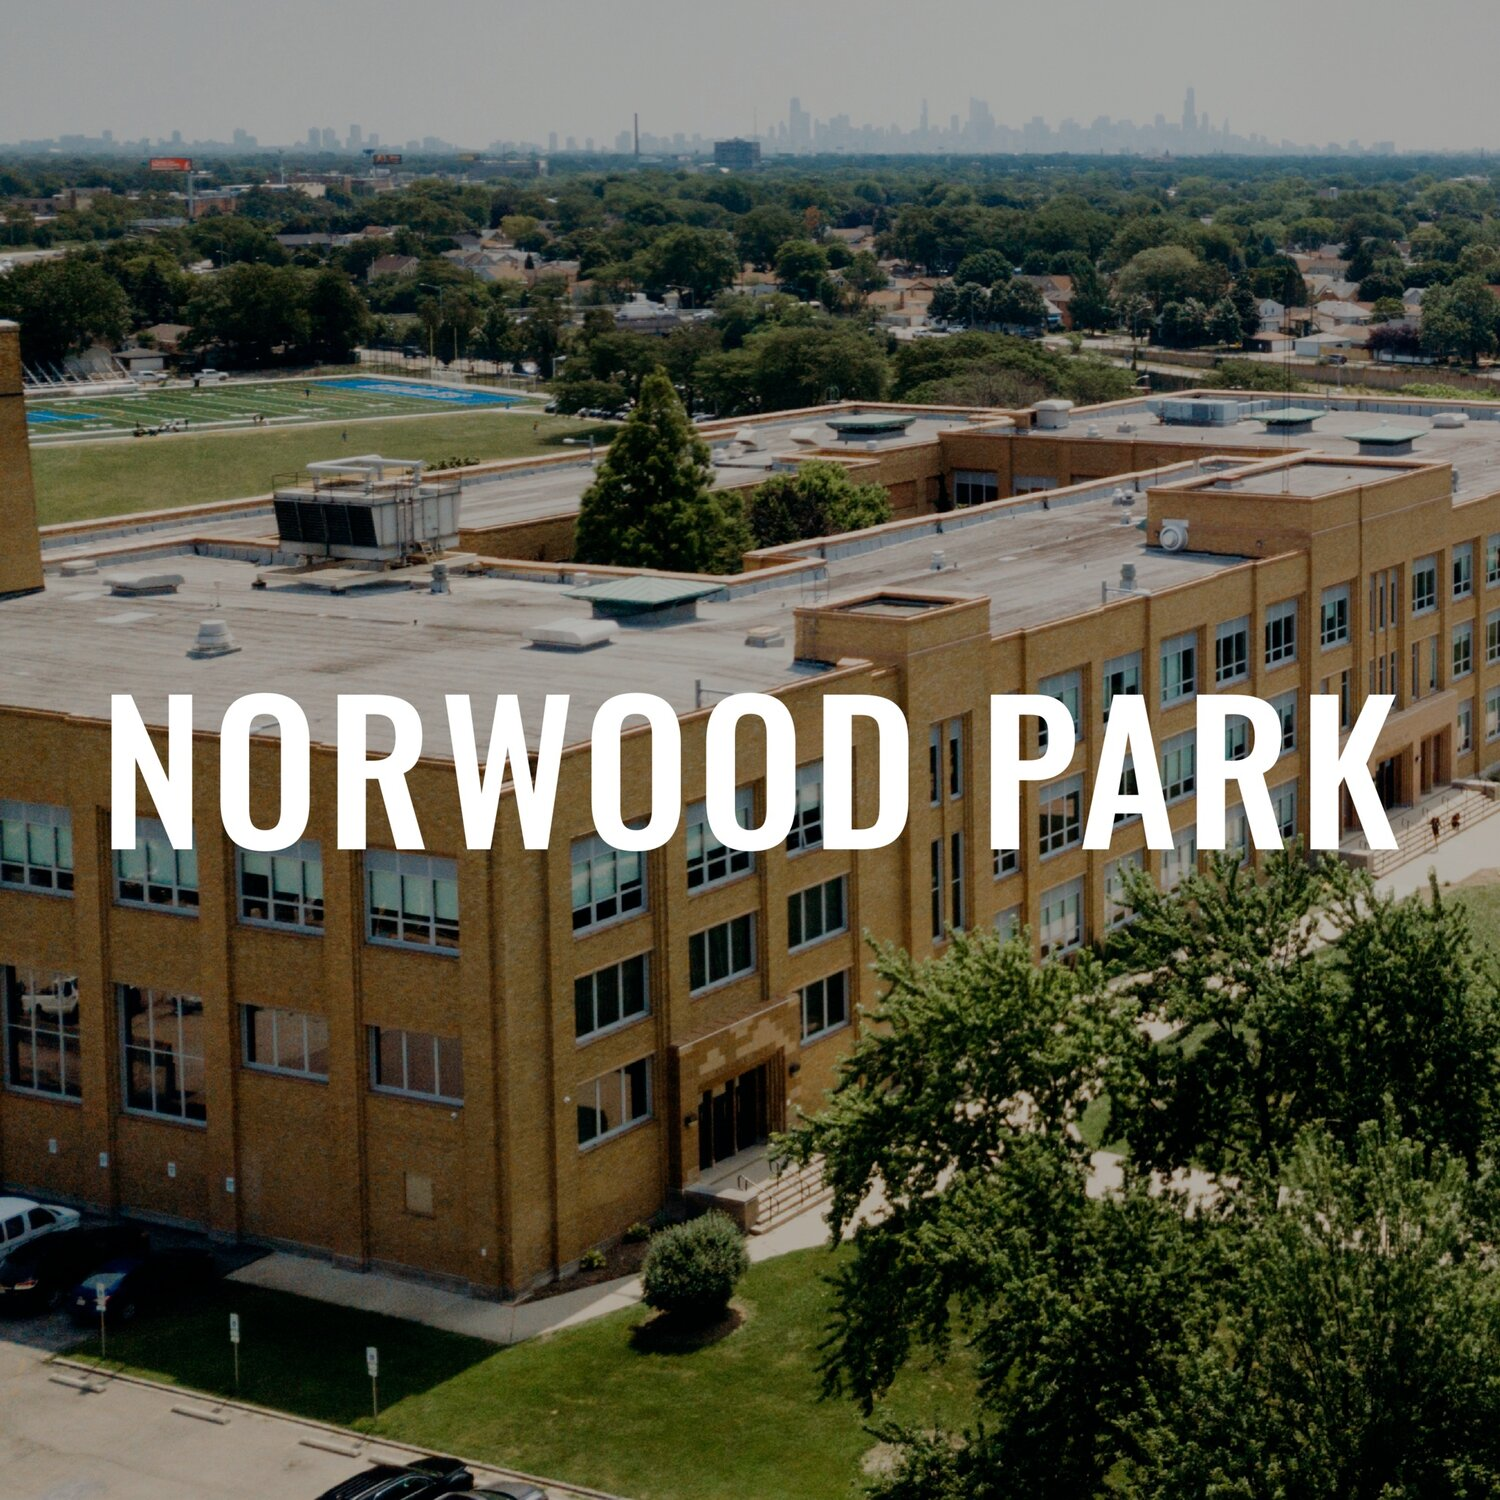 NorwoodPark-podcast.png